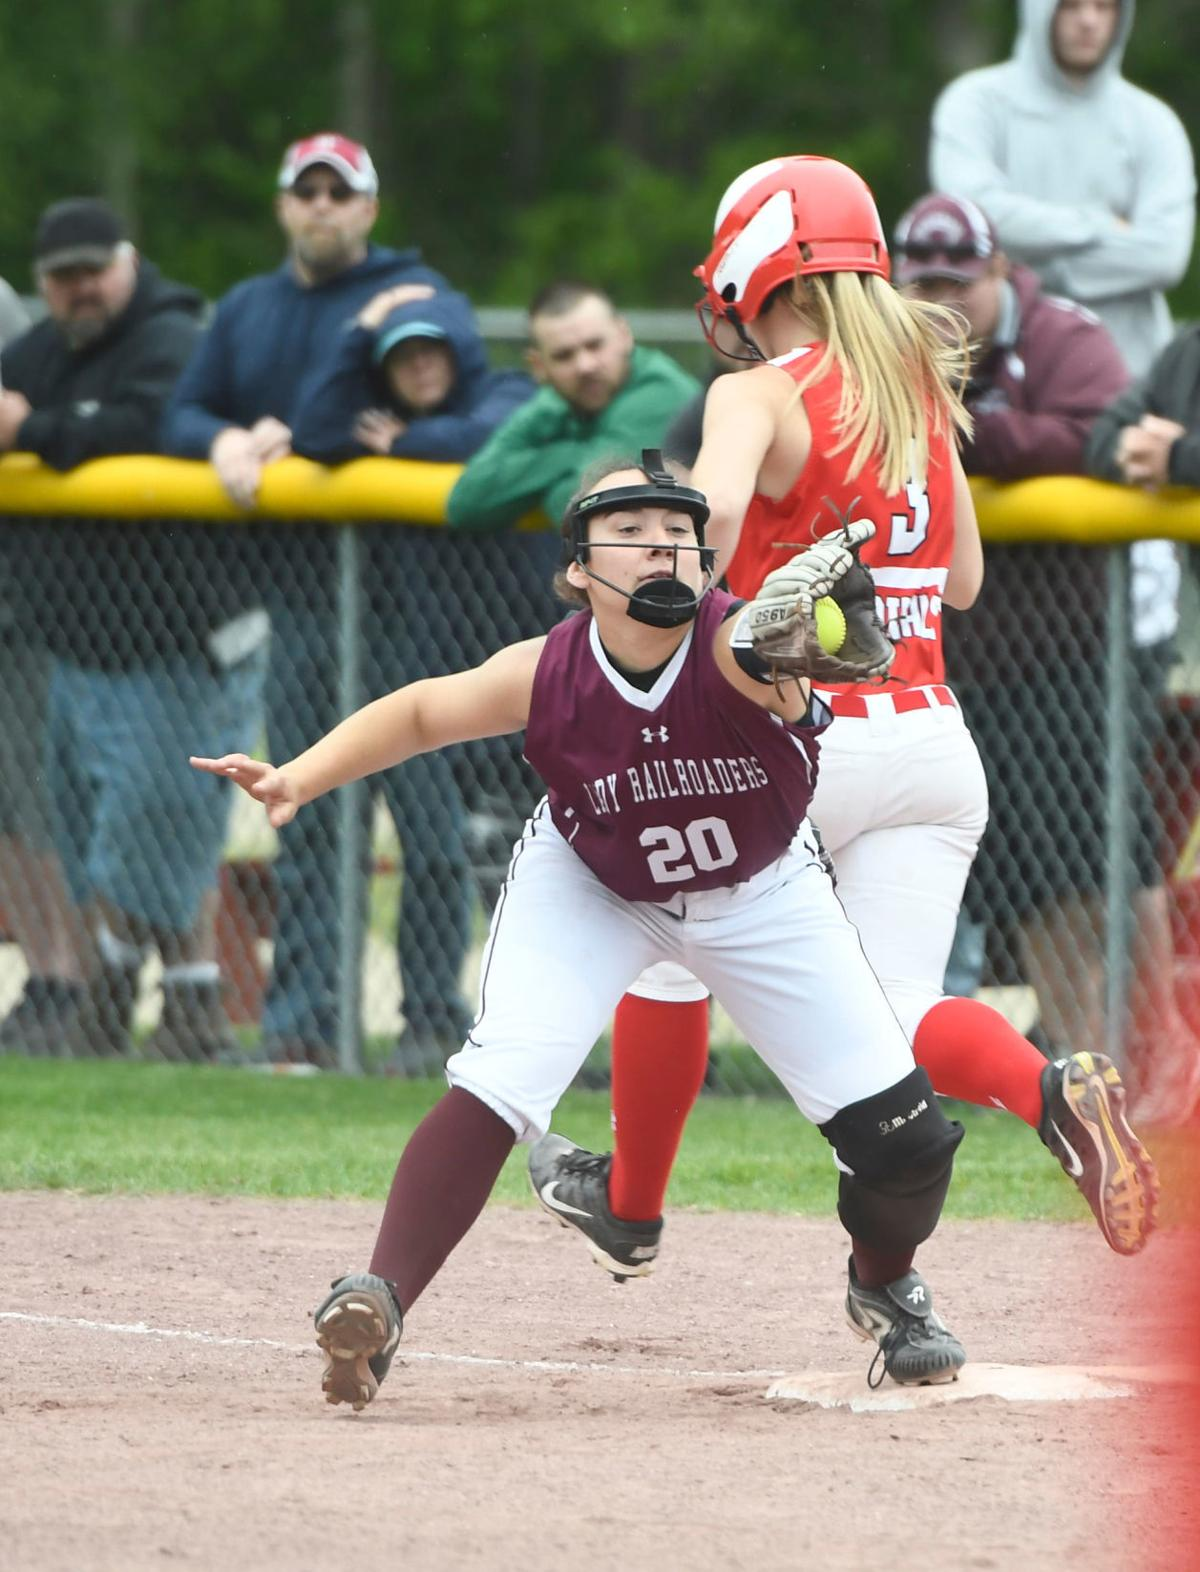 Softball: Fort Ann vs. Whitehall